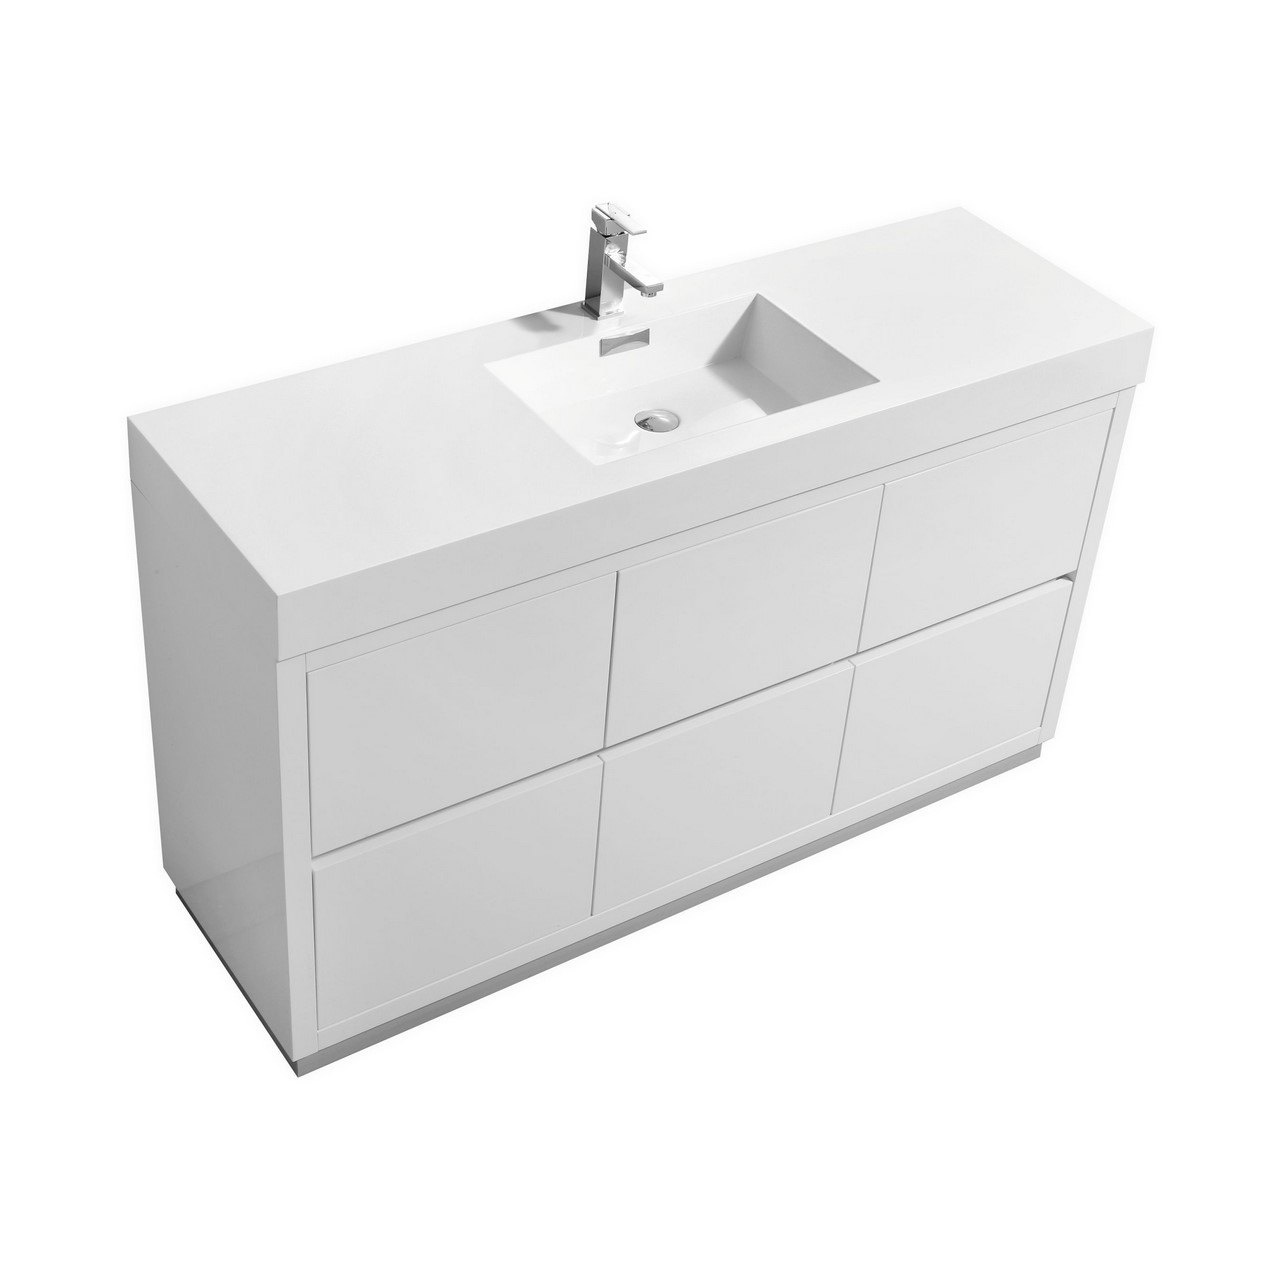 Bliss 60 Single Sink High Gloss White Free Standing Vanity